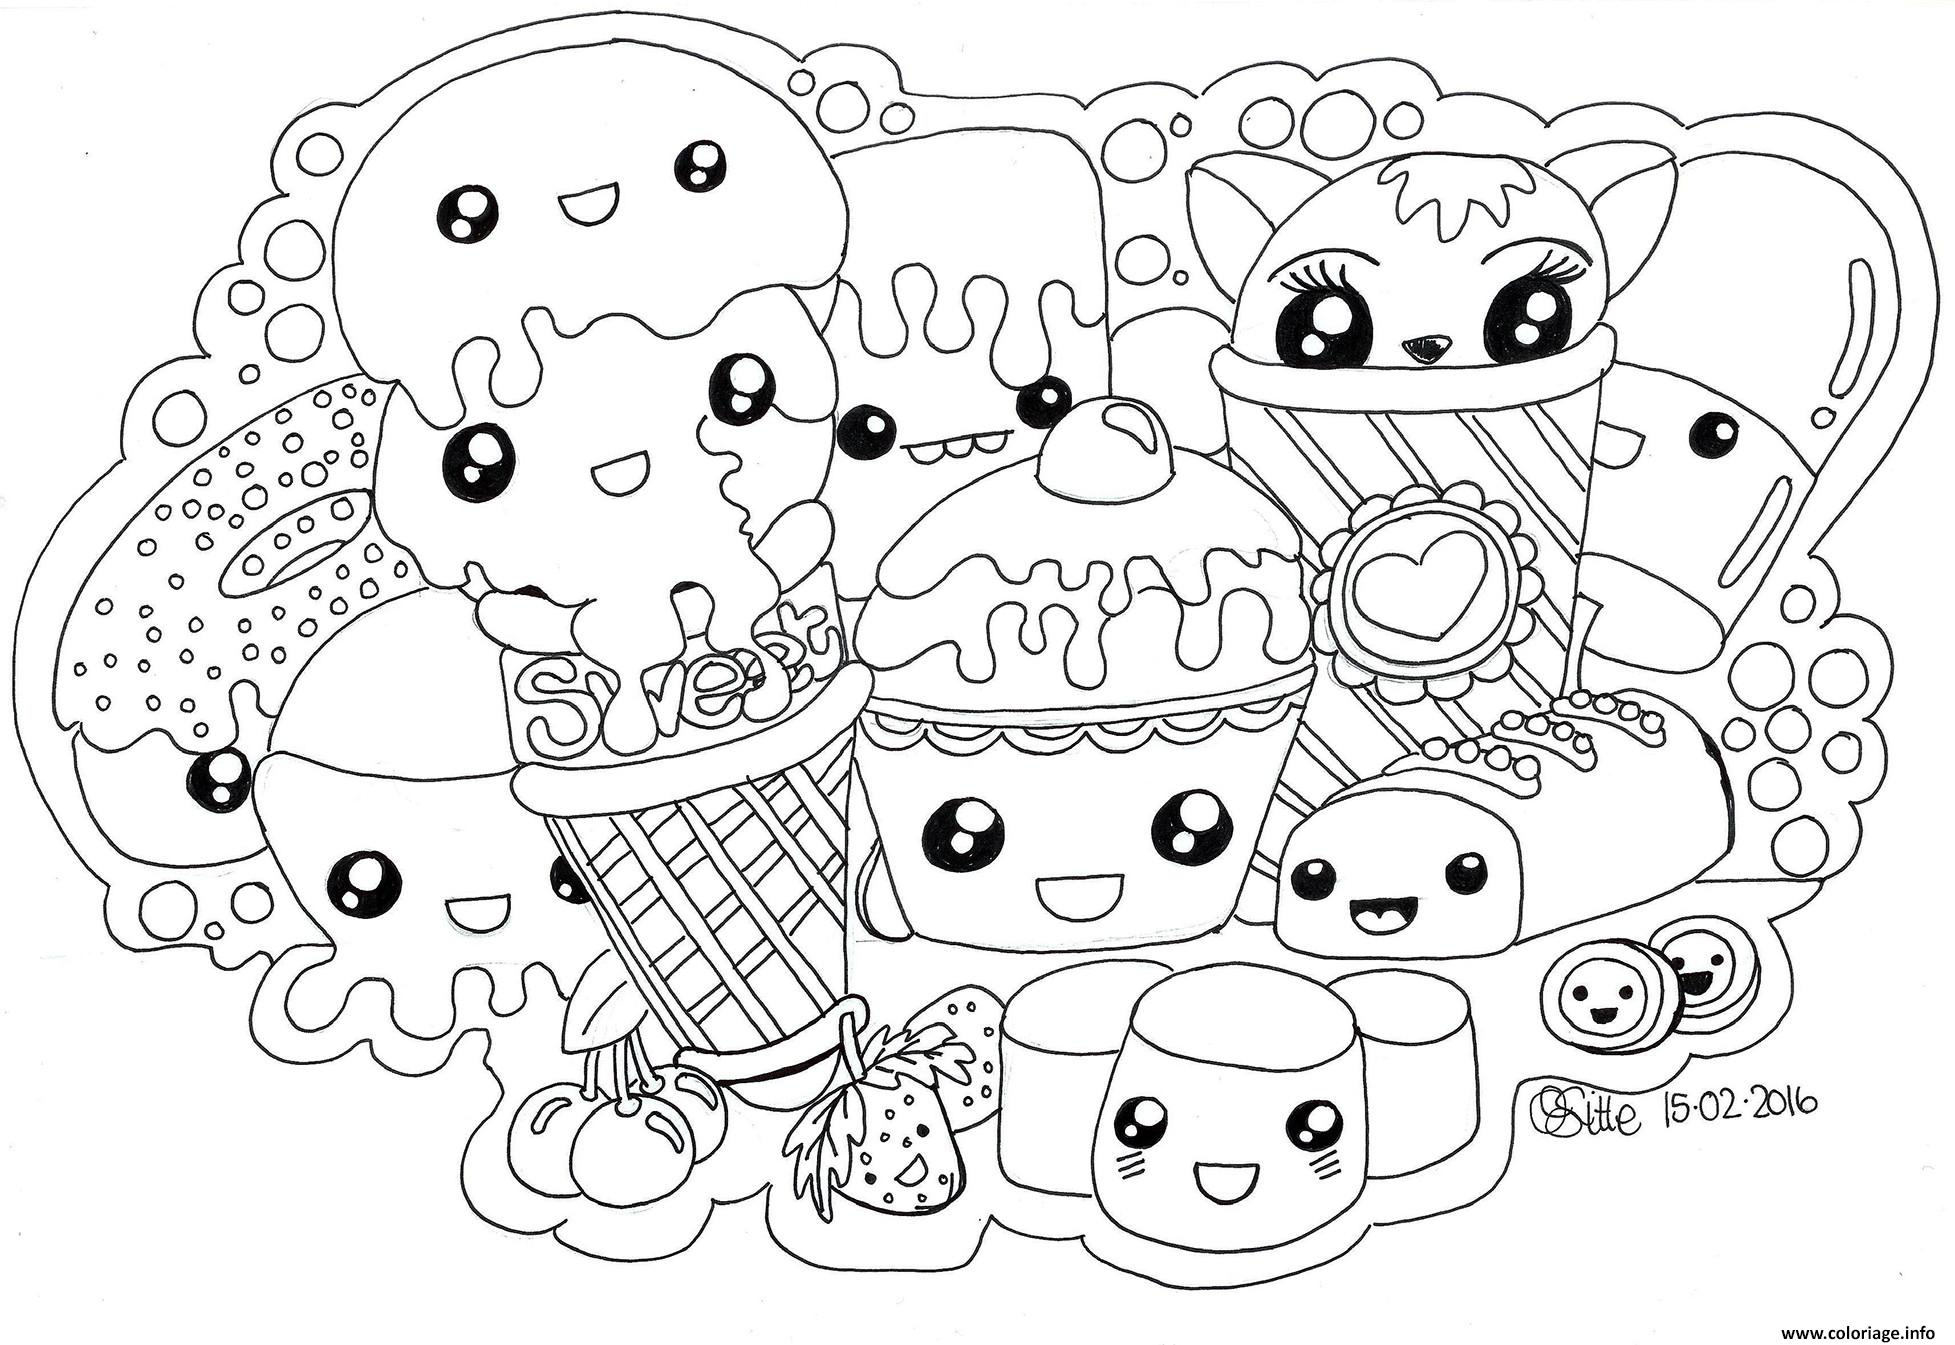 Coloriage kawaii sweets colour manga cute dessin - Image kawaii a imprimer ...